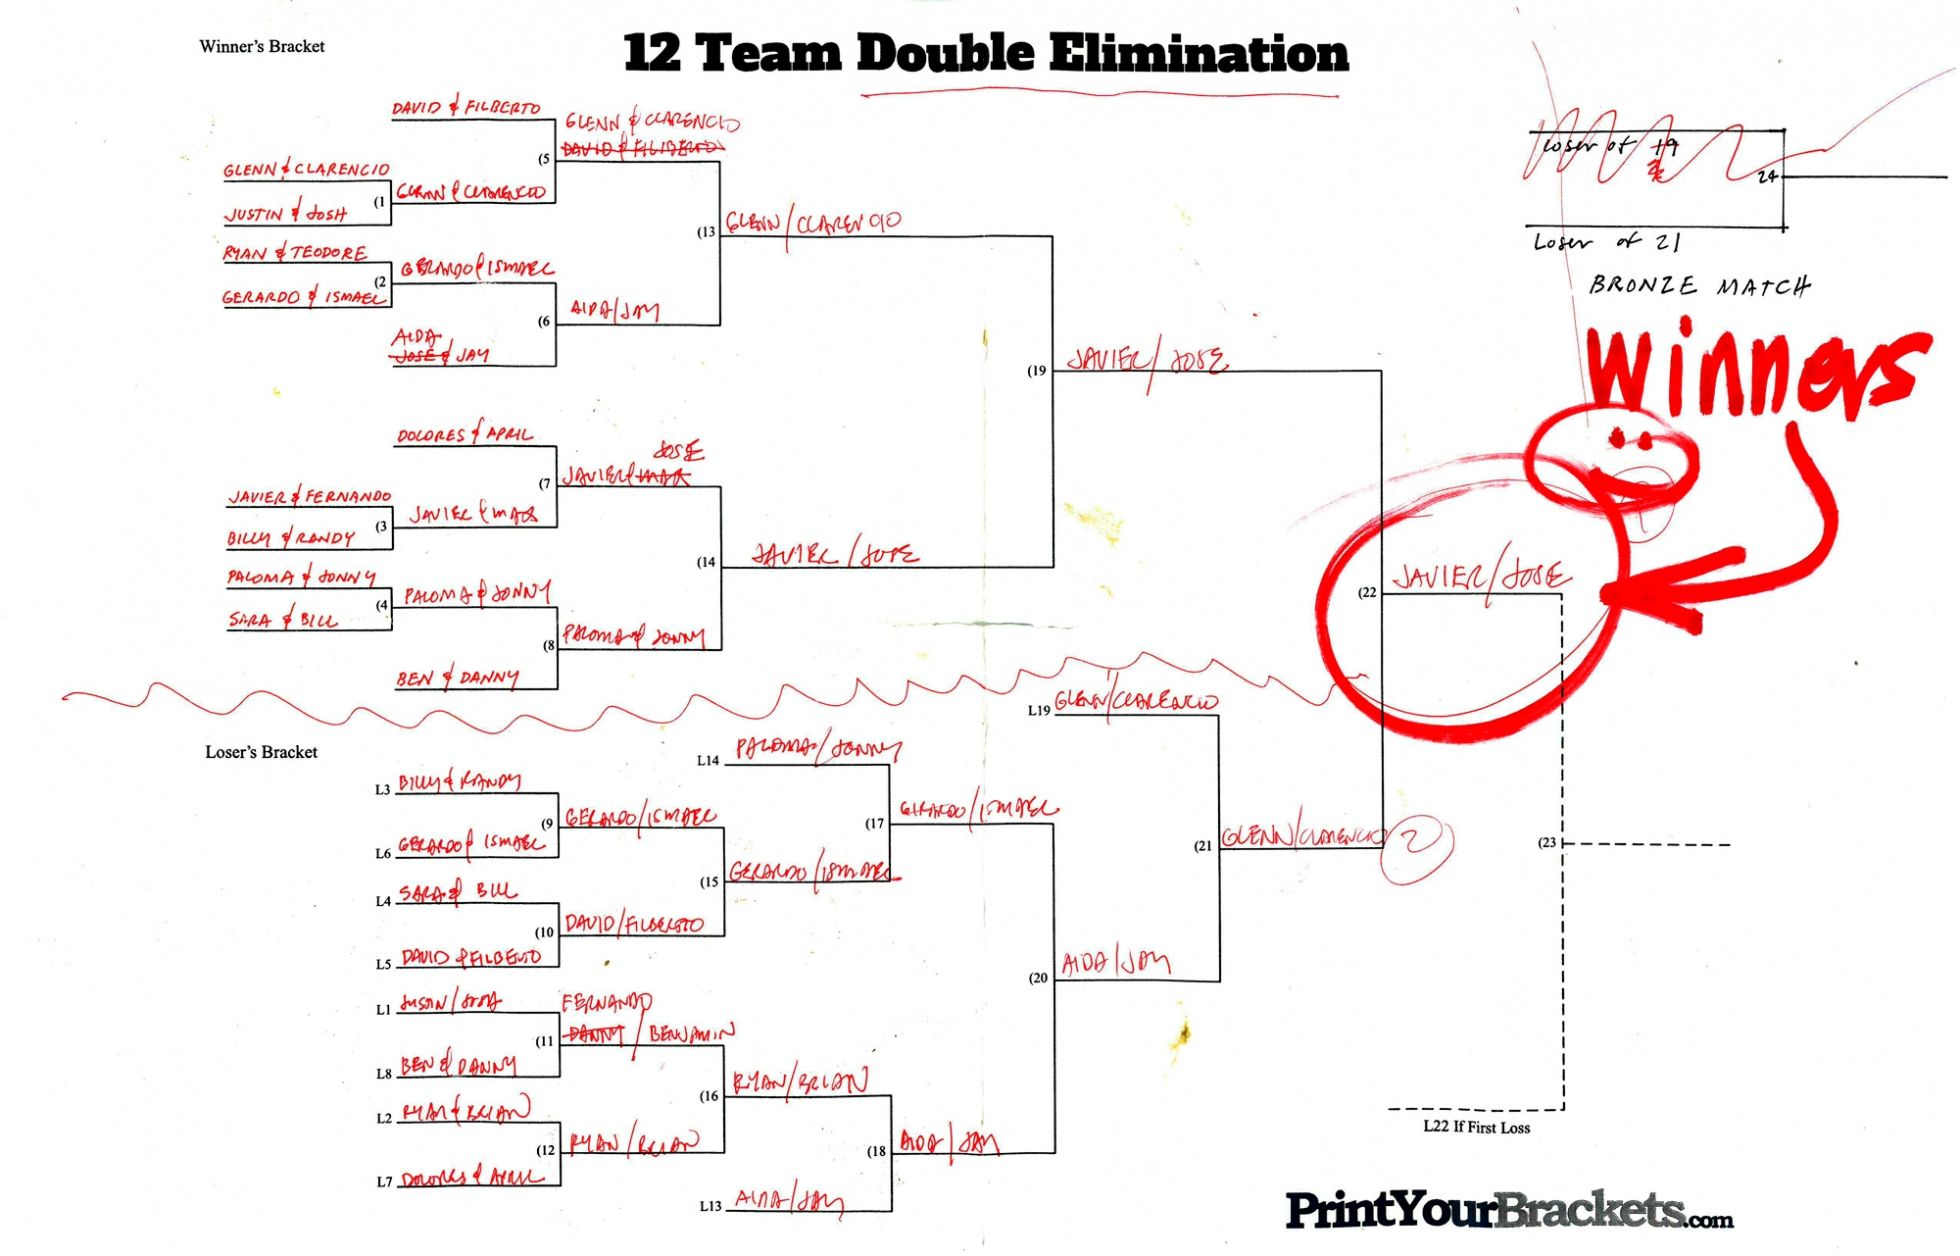 12 Team Double Elimination Bracket